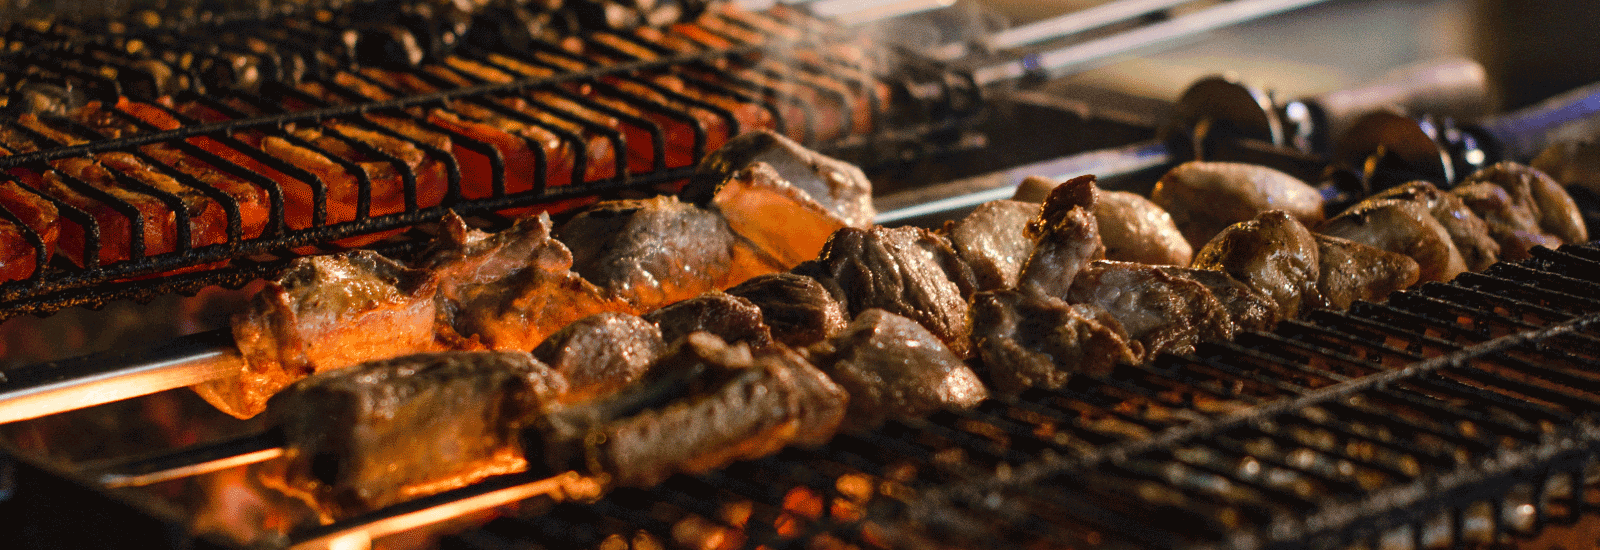 Barbecue Places Near Eielson AFB